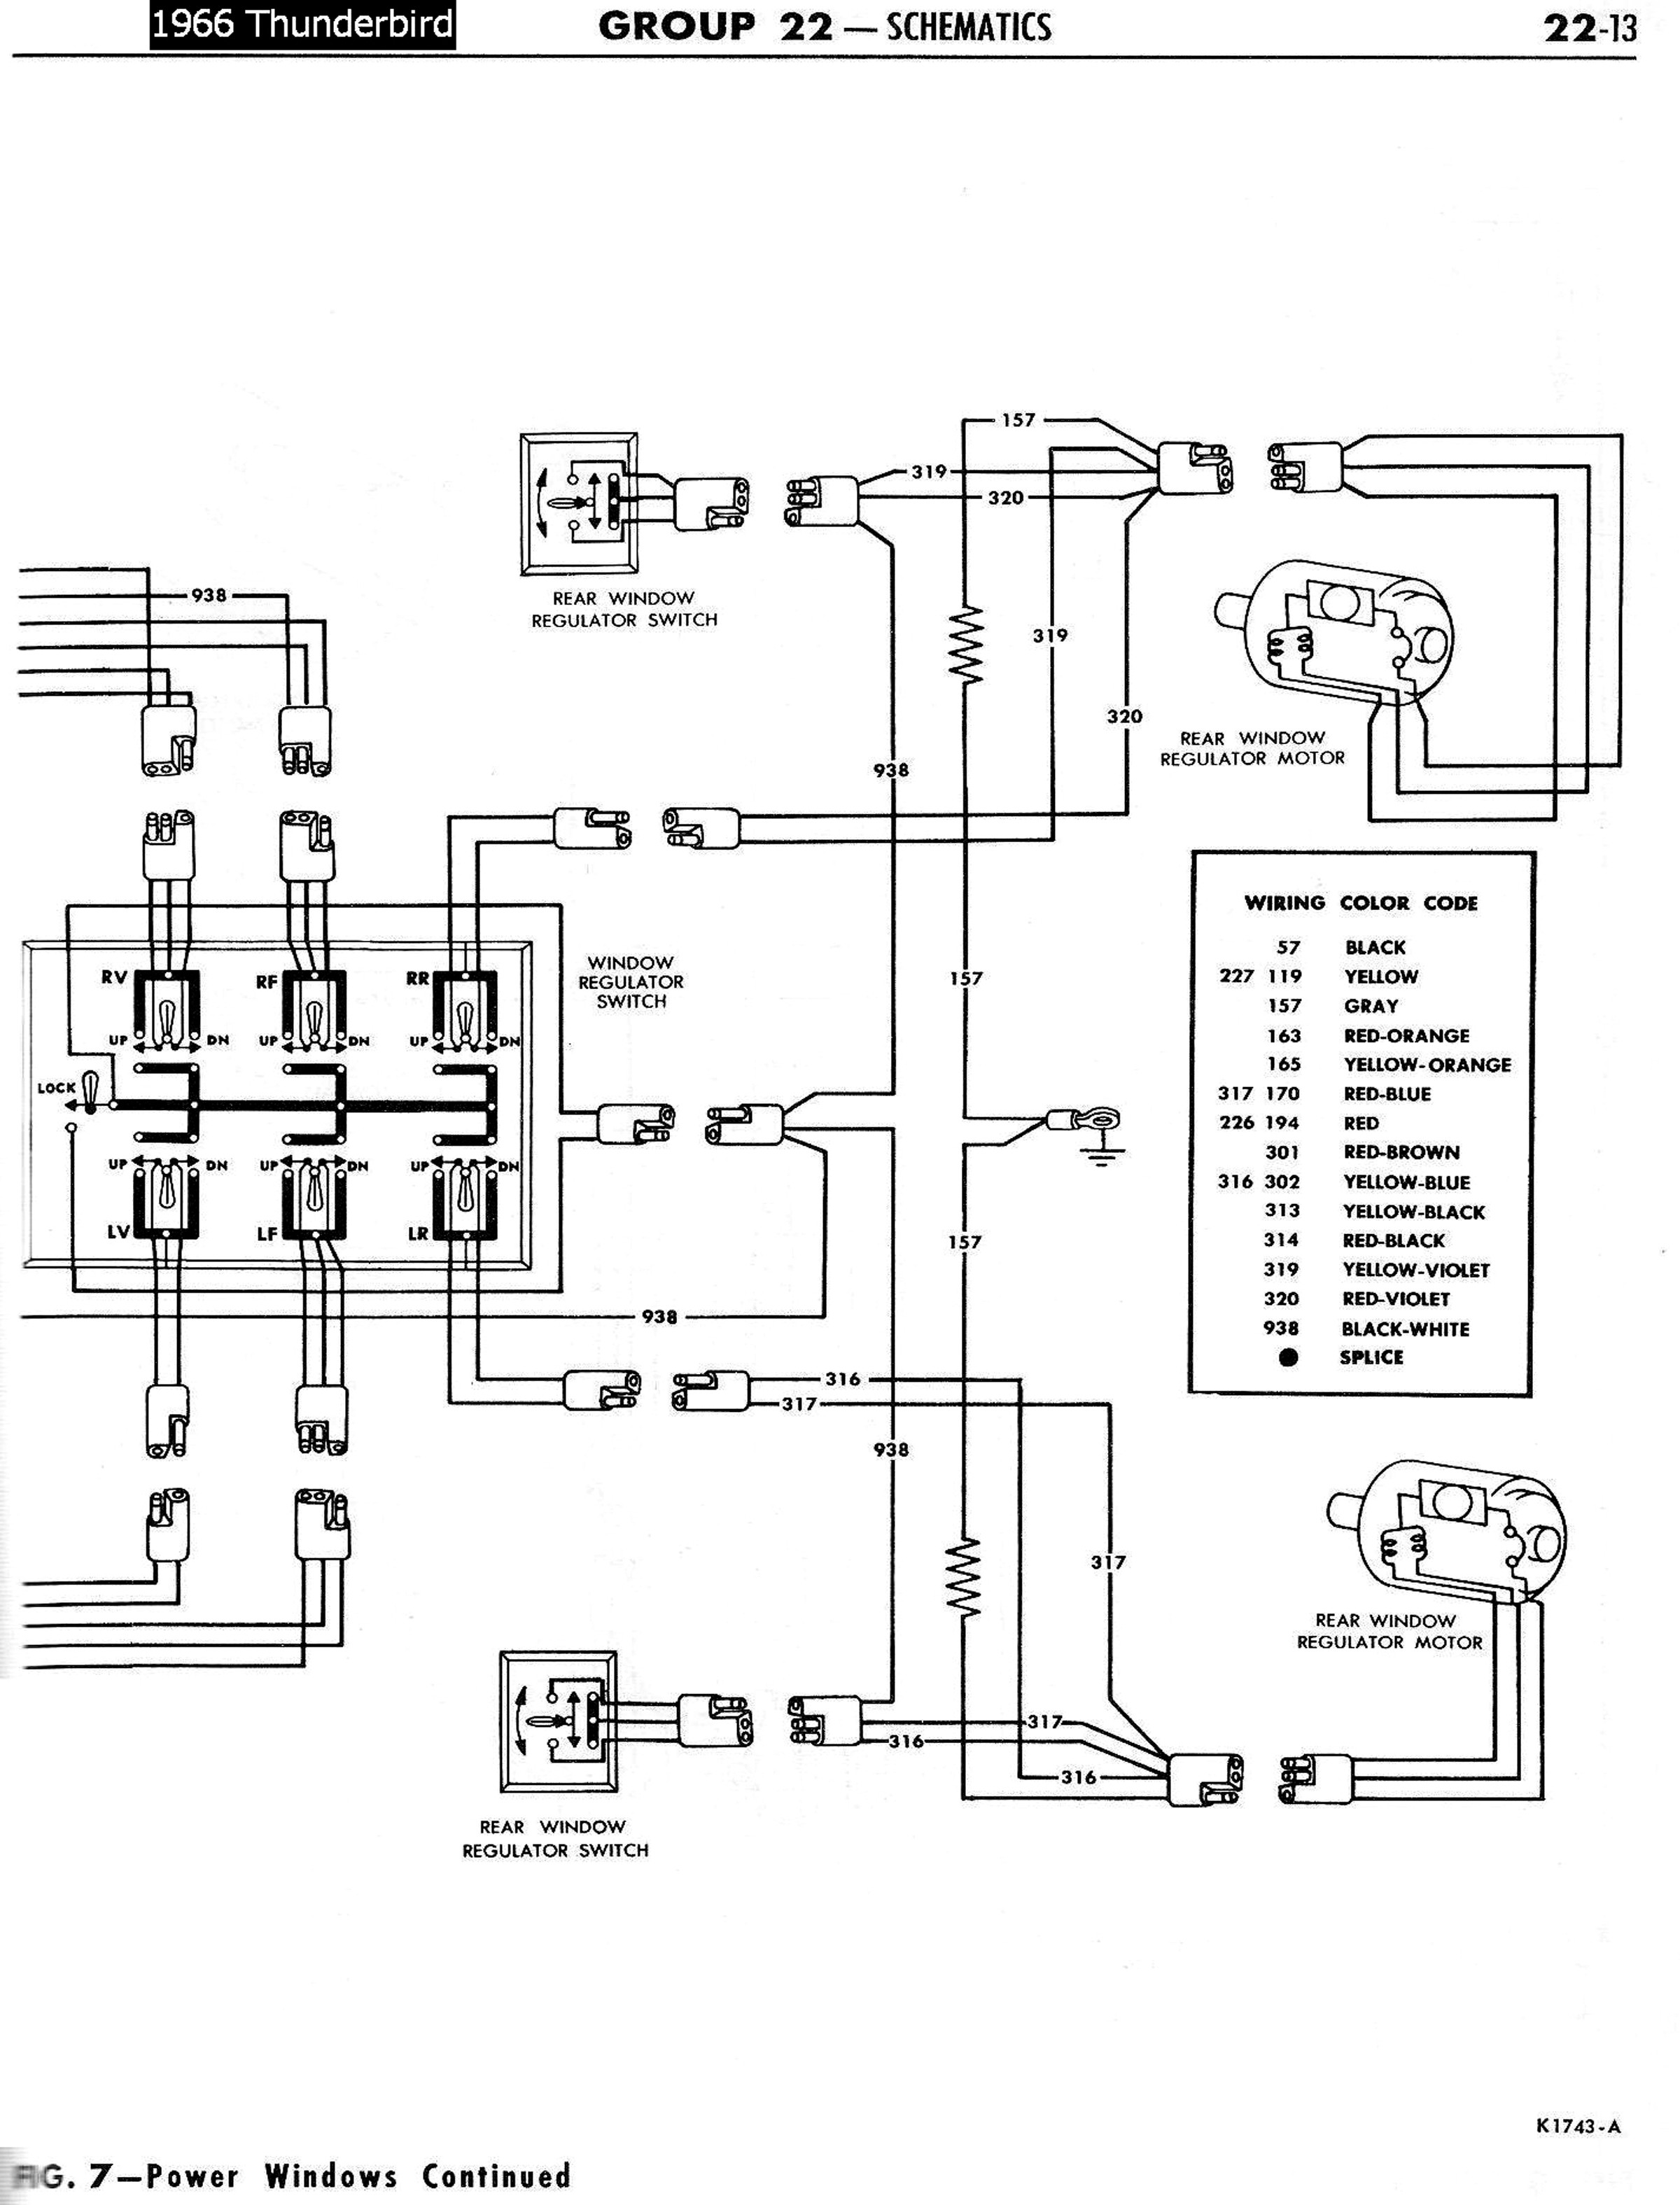 Turn Signal Wiring Diagram Motorcycle T Bird Wiring Diagram Turn Signals Wiring Diagram Of Turn Signal Wiring Diagram Motorcycle on 1966 ford thunderbird power window wiring diagram